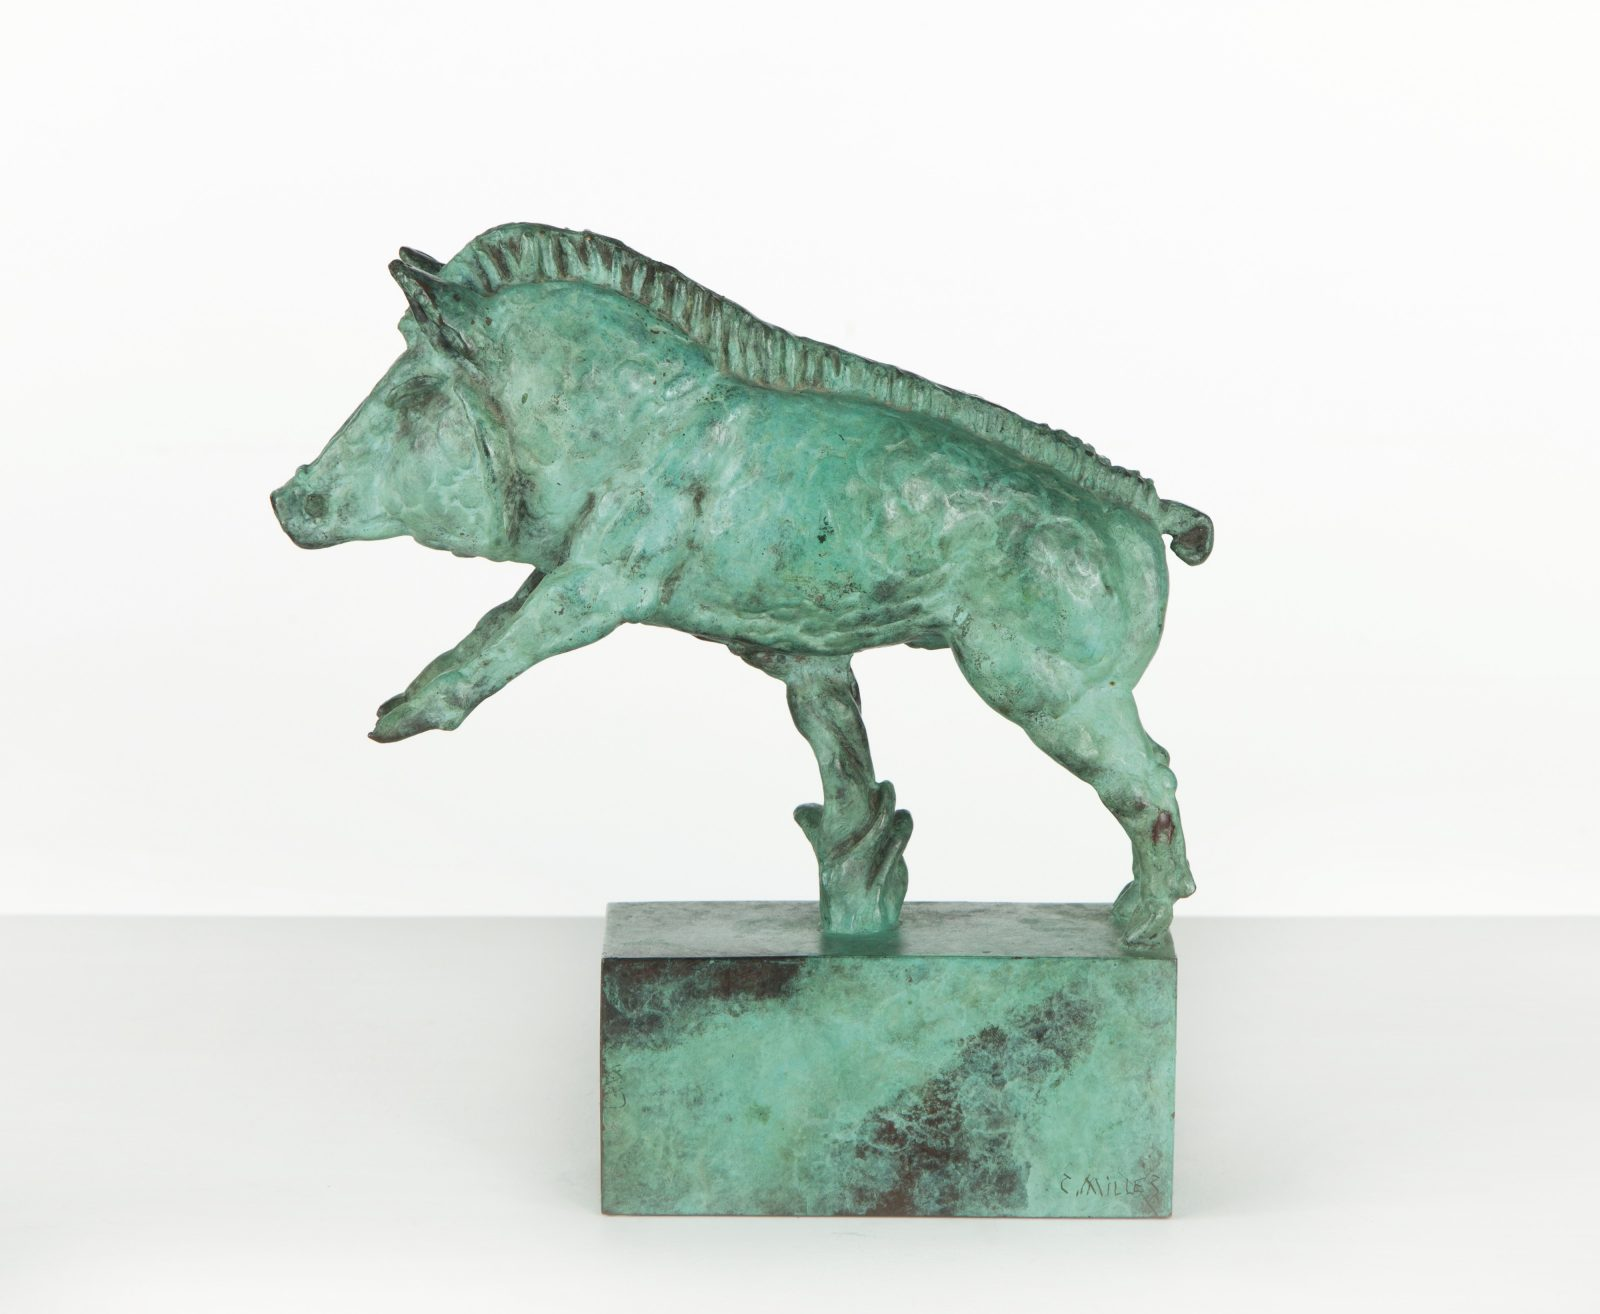 This work by Carl Milles shows a small boar in bronze